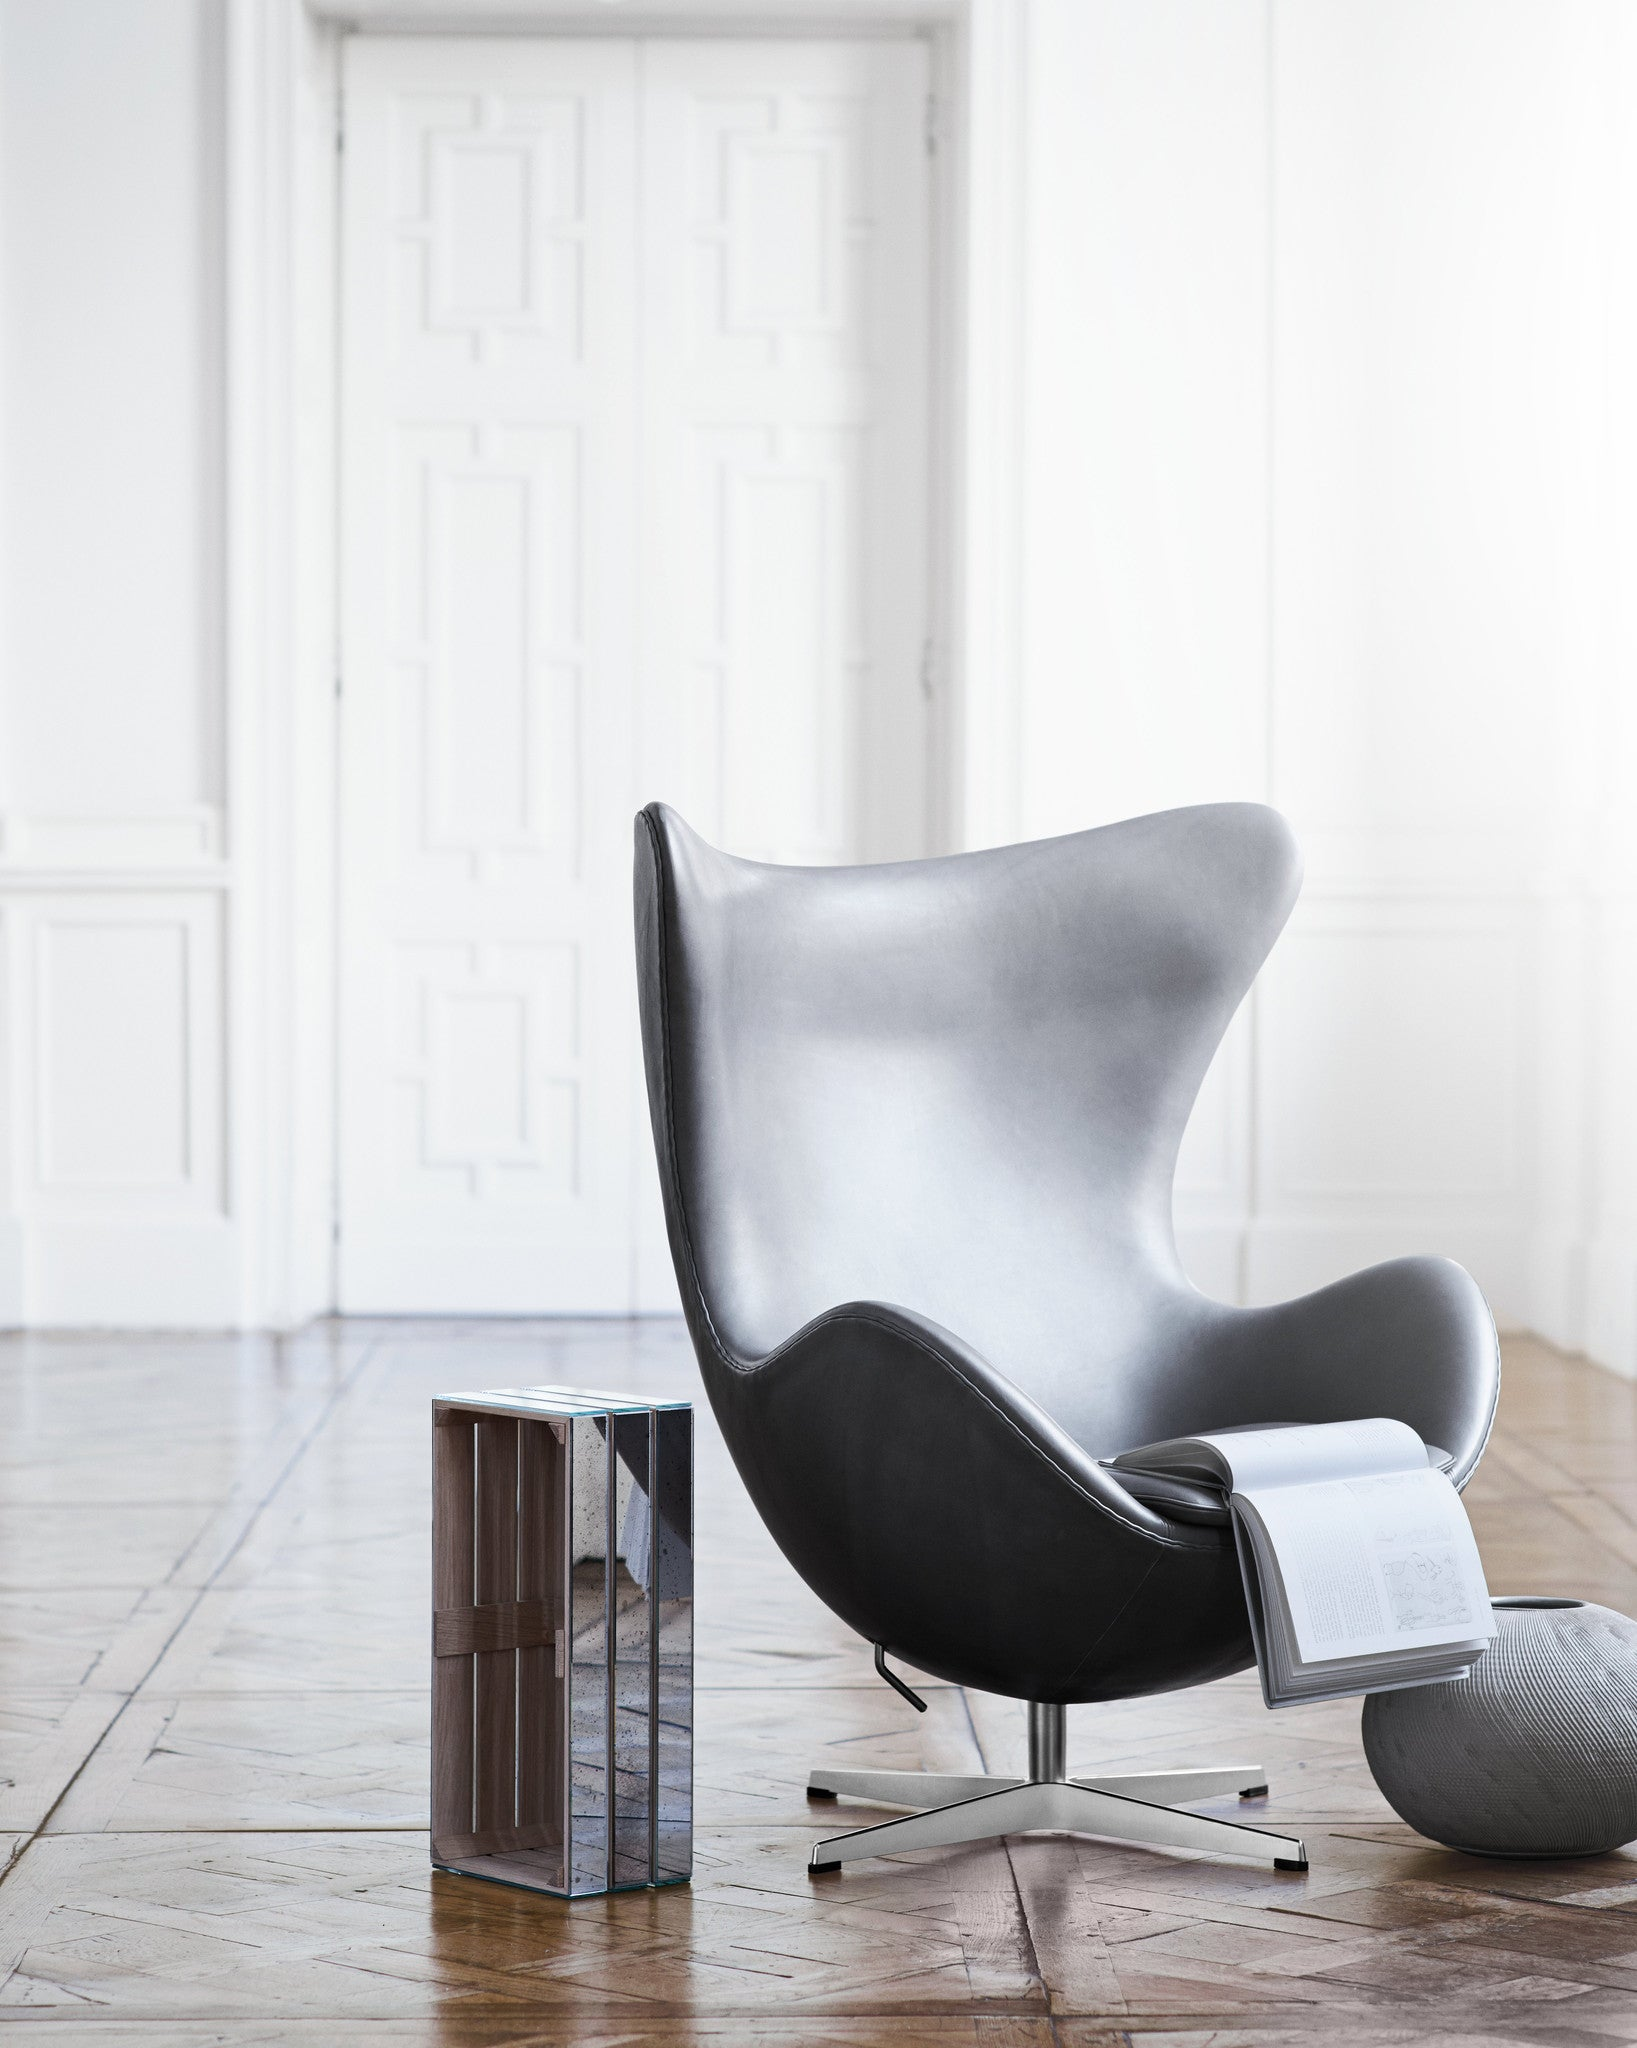 Arne jacobsen egg chair leather - Arne Jacobsen Egg Chair Grey Leather Arne Jacobsen Egg Chair Couch Potato Company